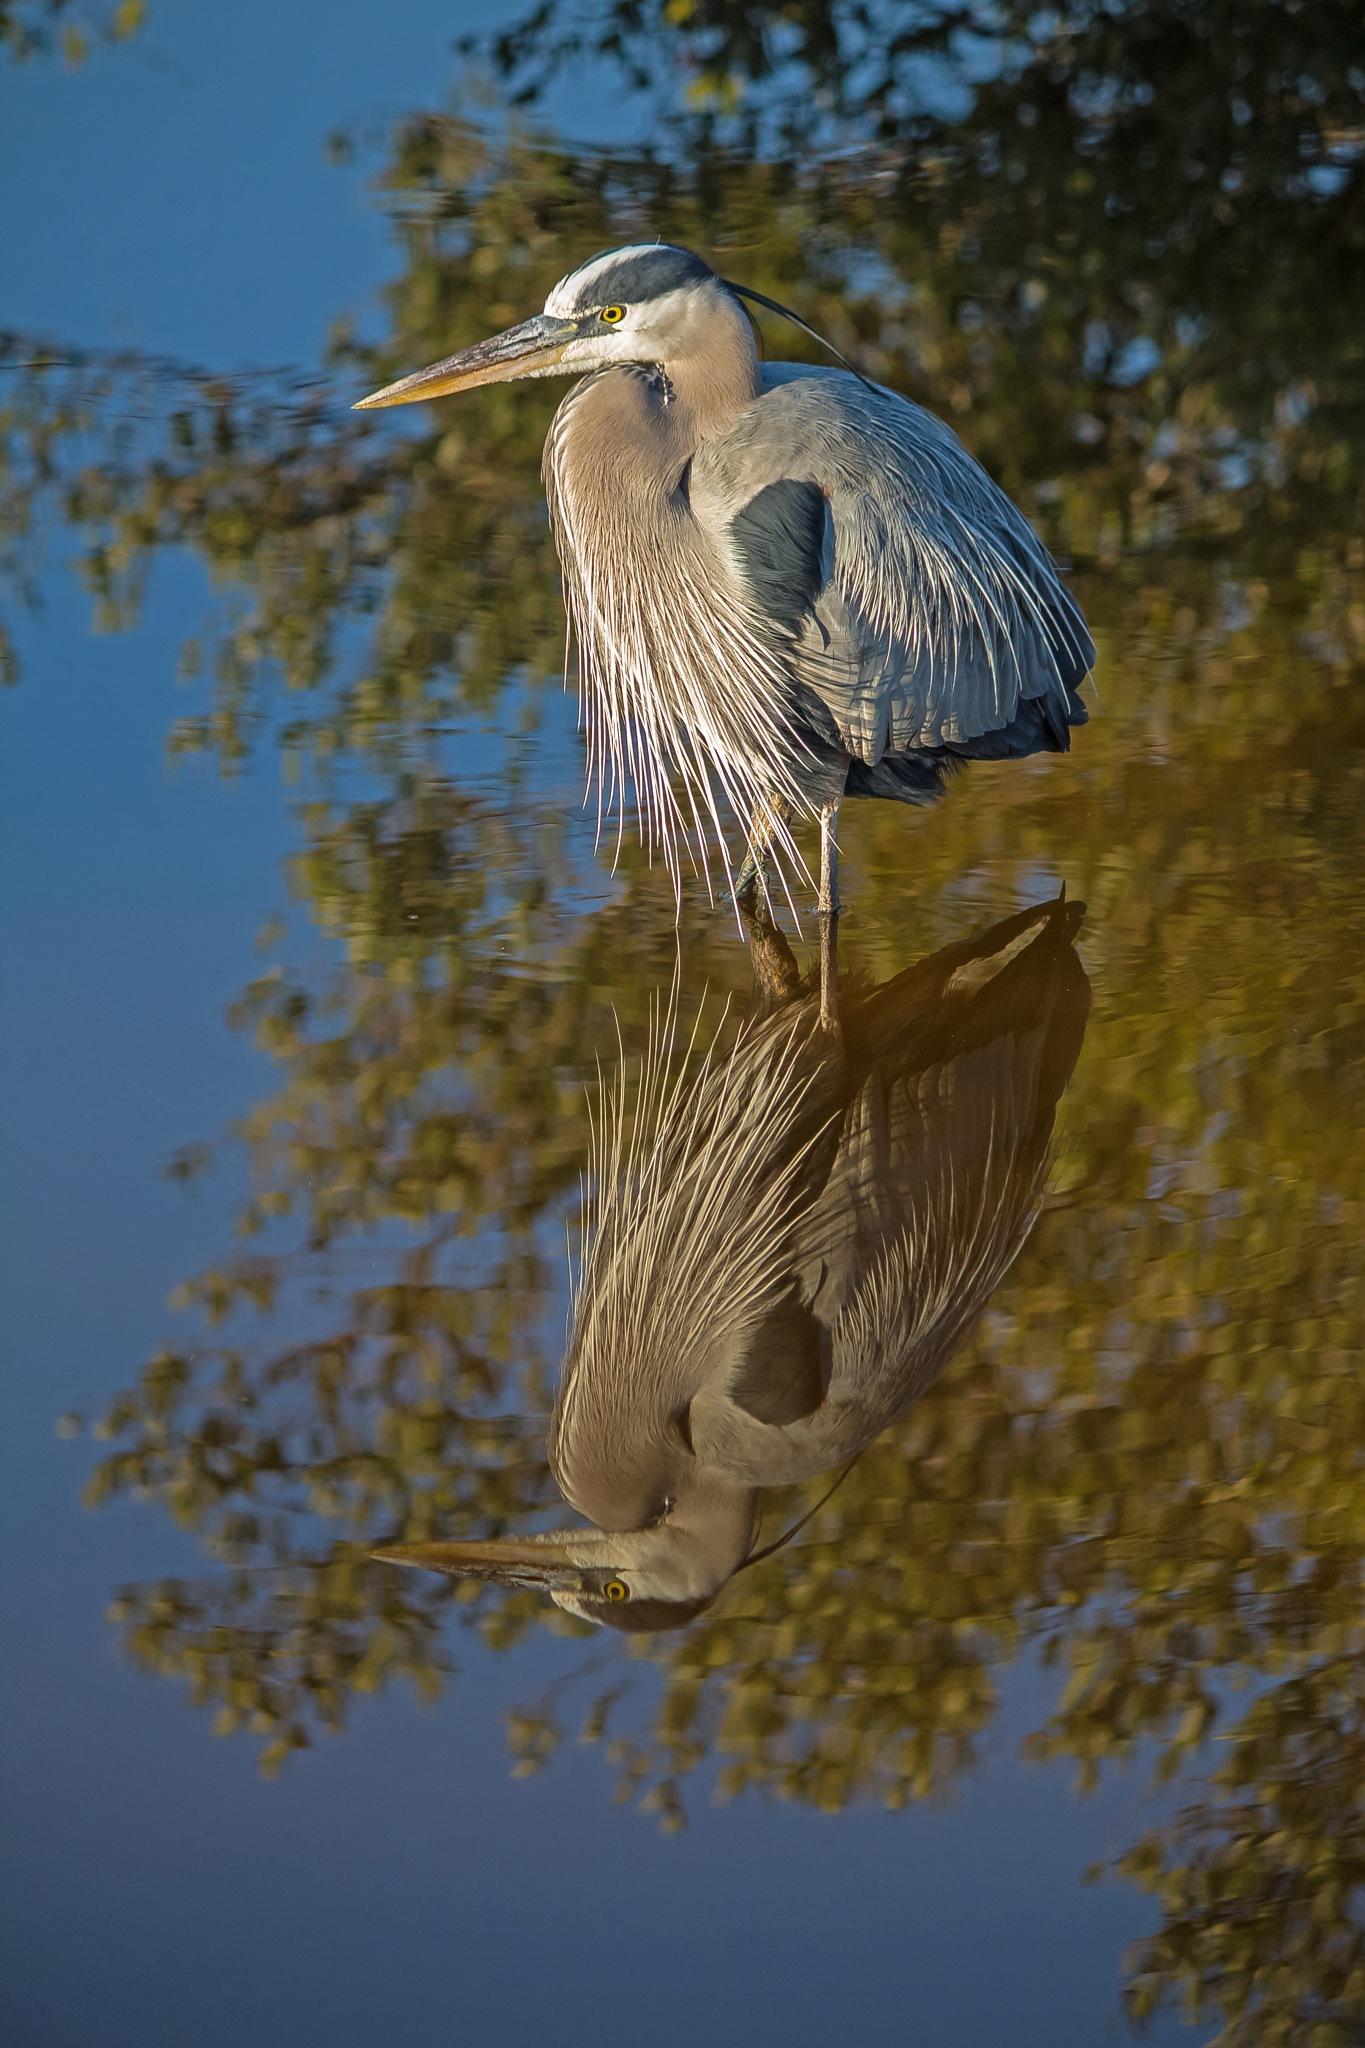 Great Blue Heron Reflection by Barry Melamed